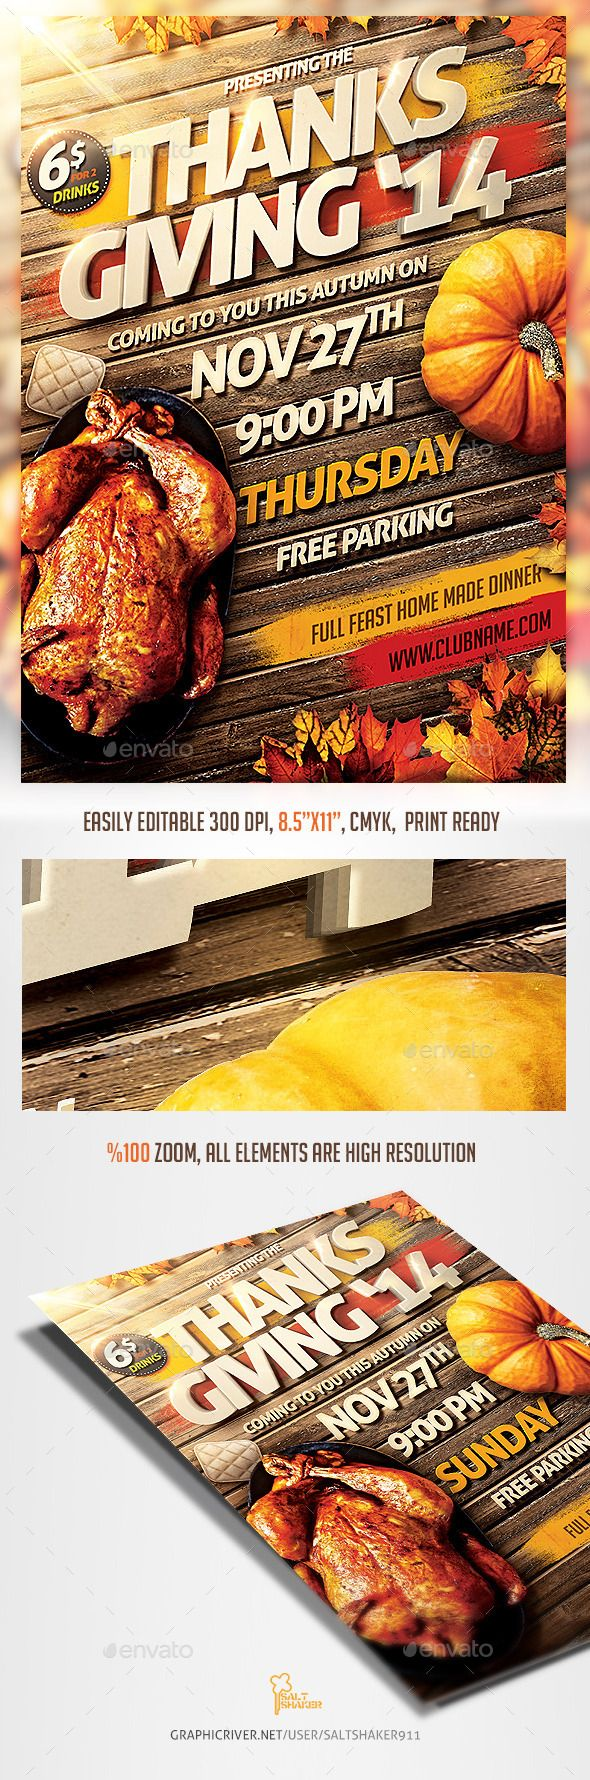 Thanks Giving Party Invitation Flyer Download Photoshop File here…